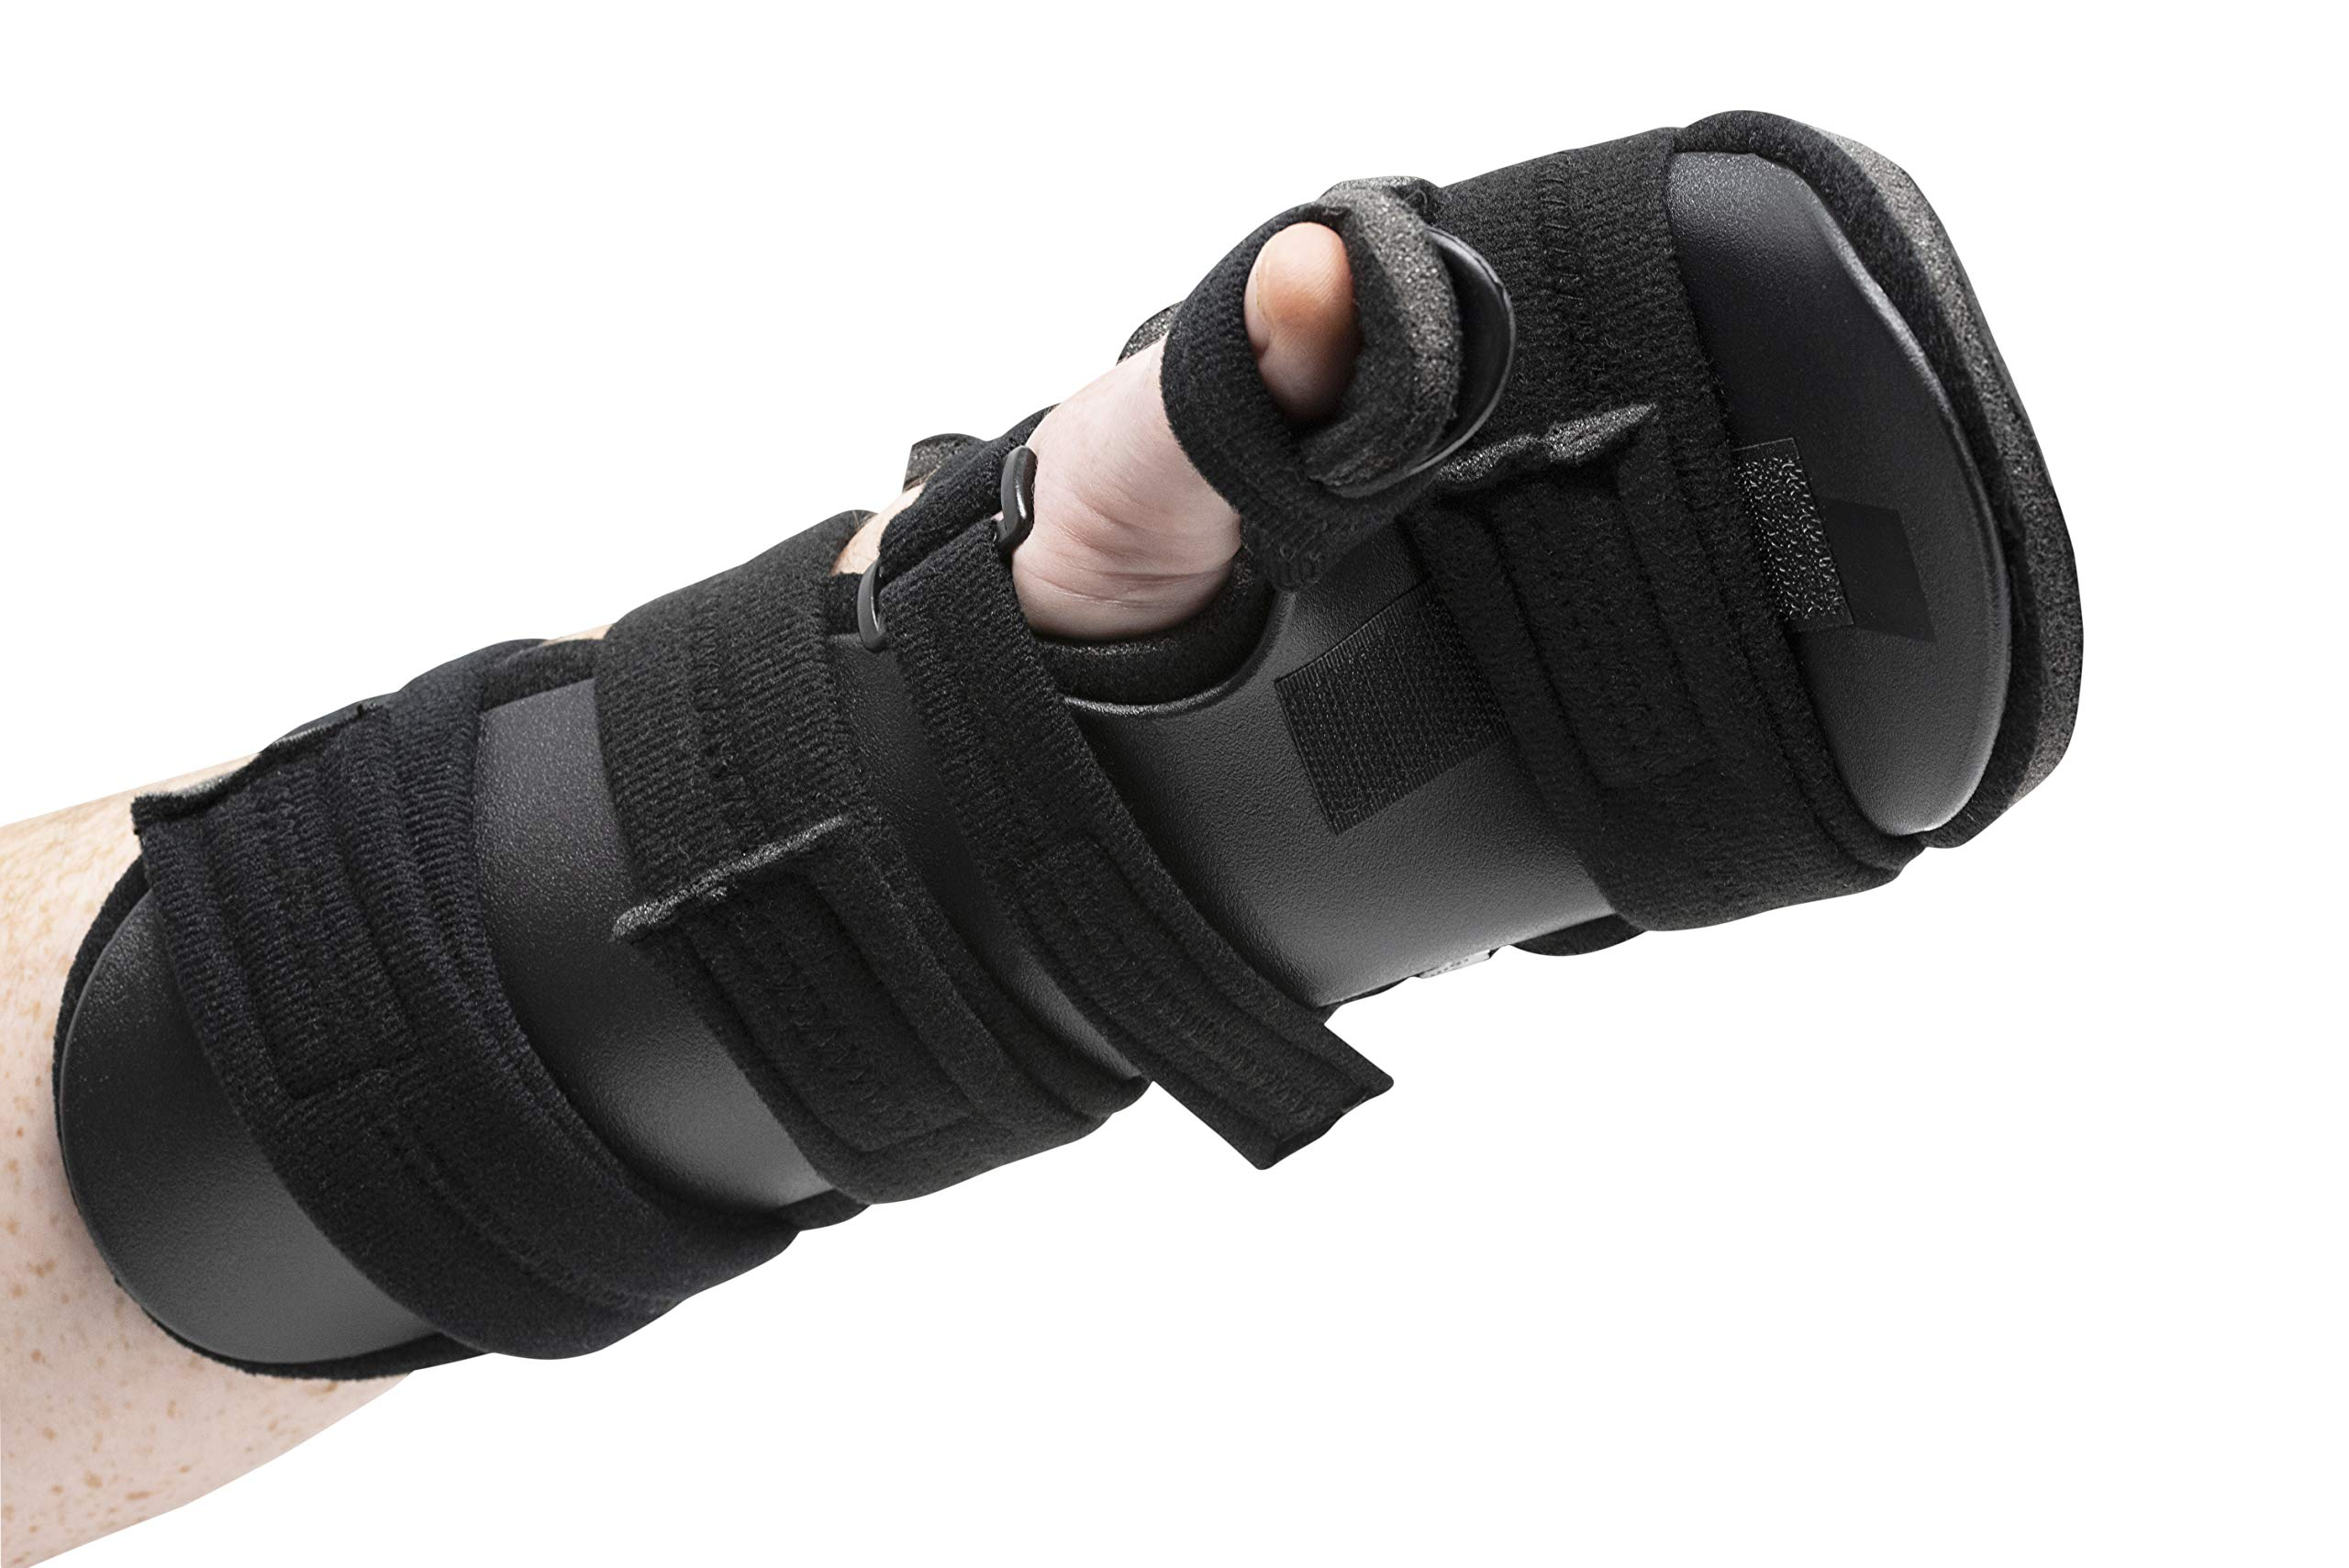 Stroke Hand Splint- Soft Resting Hand Splint for Flexion Contractures, Comfortably Stretch and Rest Hands for Long Term Ease with Functional Hand Splint, an American Heritage Industries(Left, Small) by American Heritage Industries (Image #7)